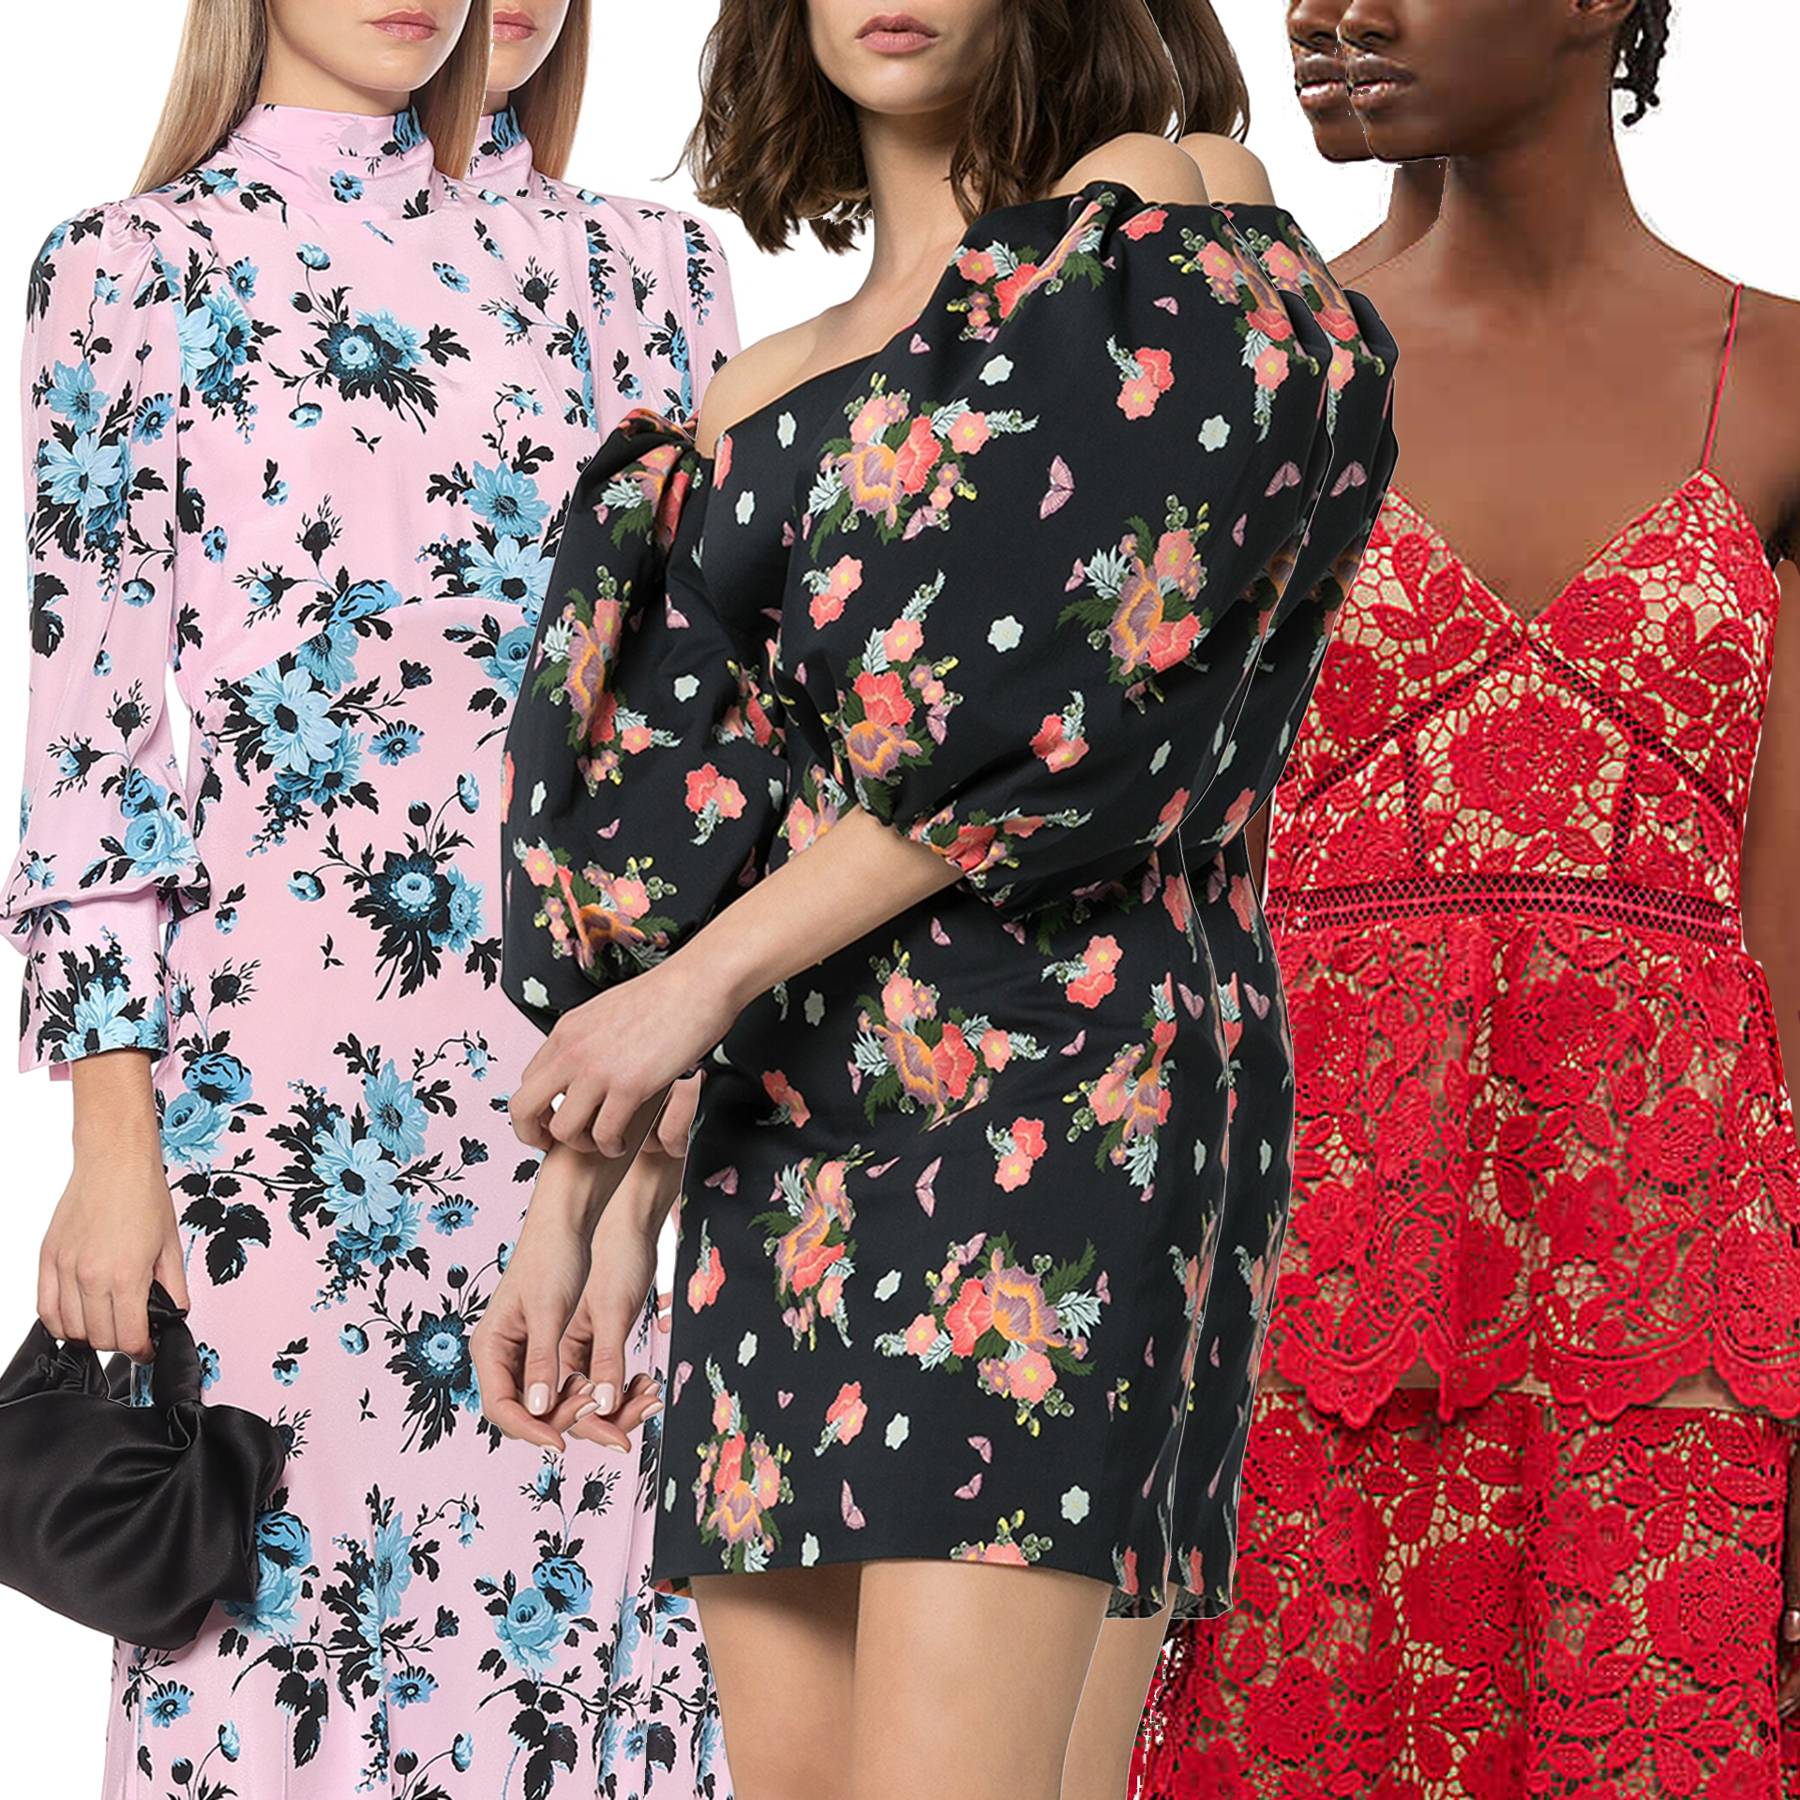 Winter Wedding Guest Dresses What To Wear To A Wedding In 2020